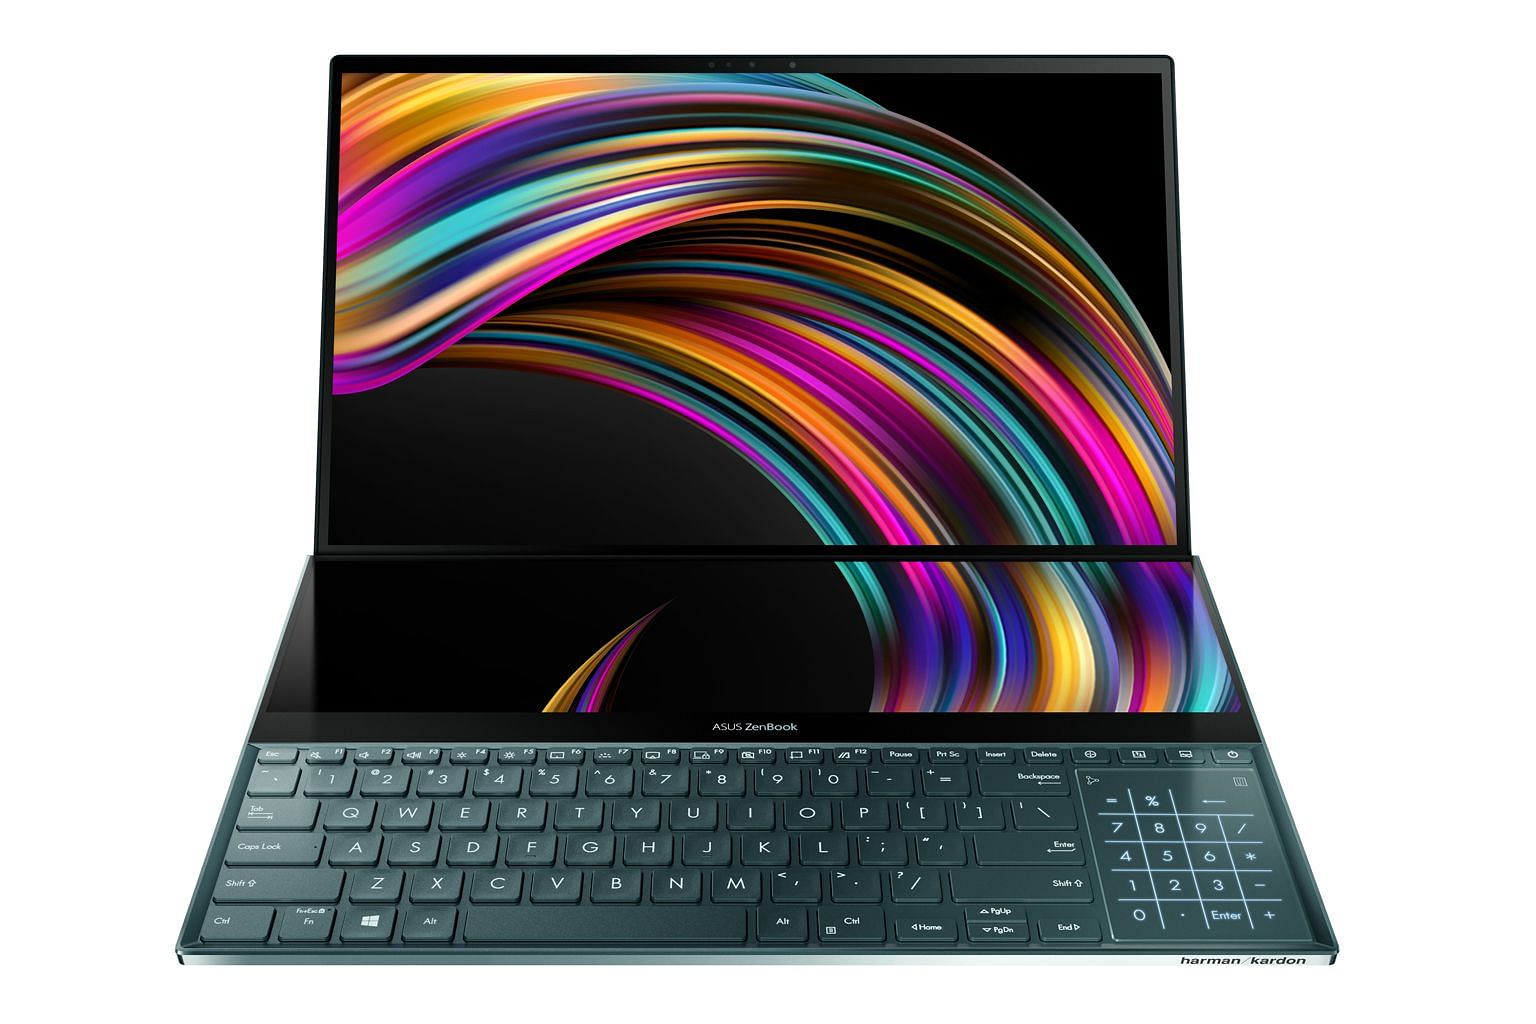 The ZenBook Pro Duo has a second touchscreen above the keyboard.